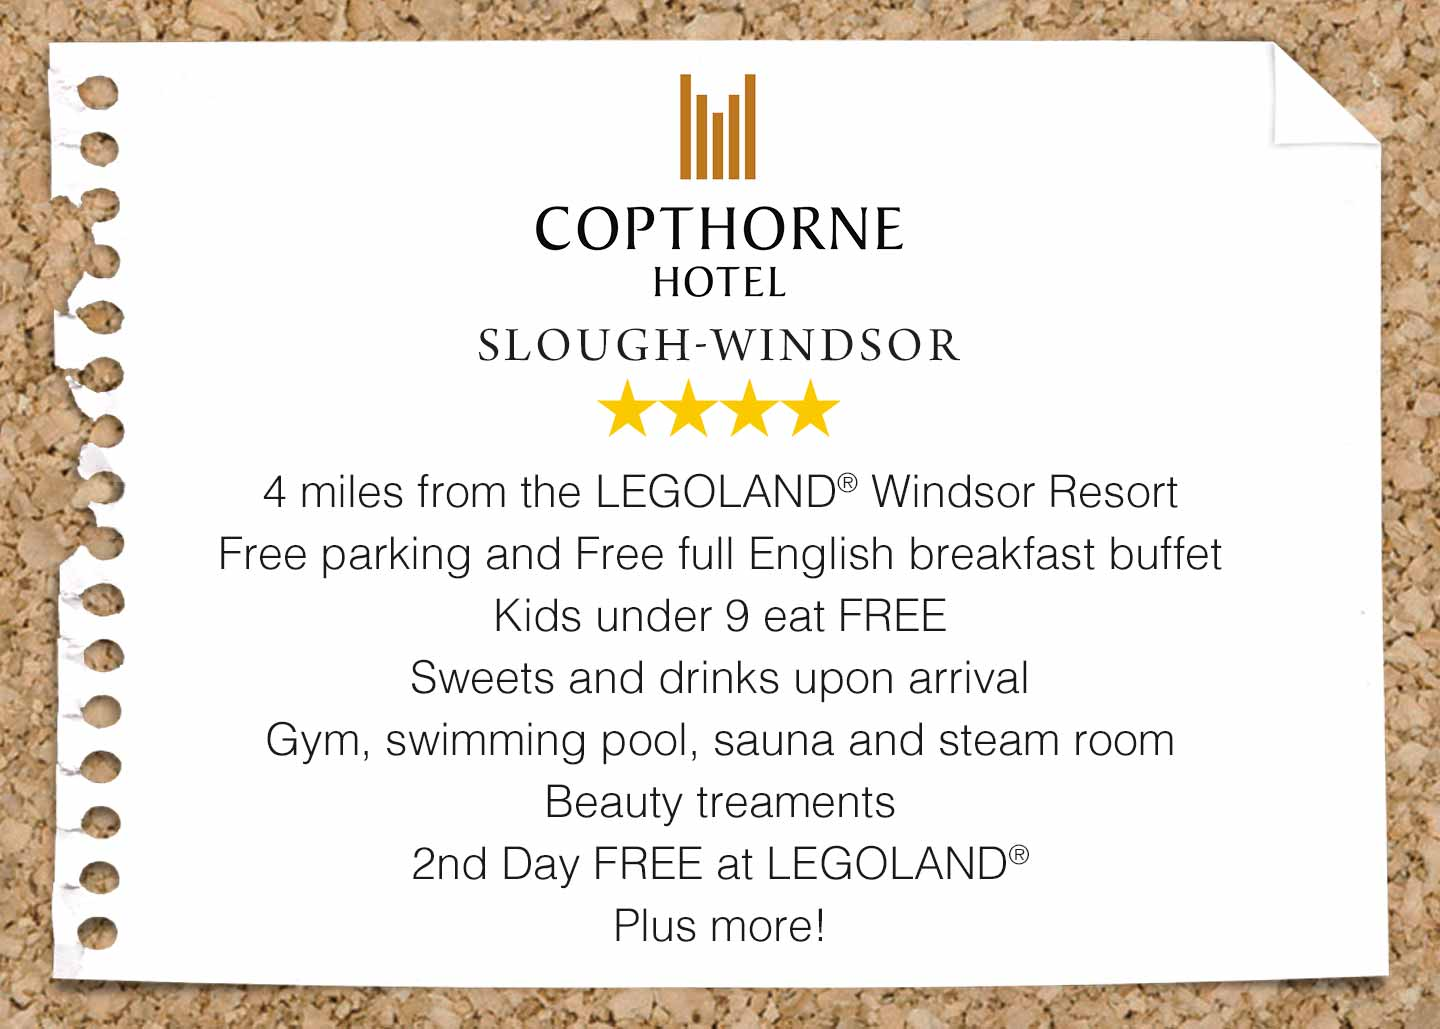 Copthorne Slough Windsor